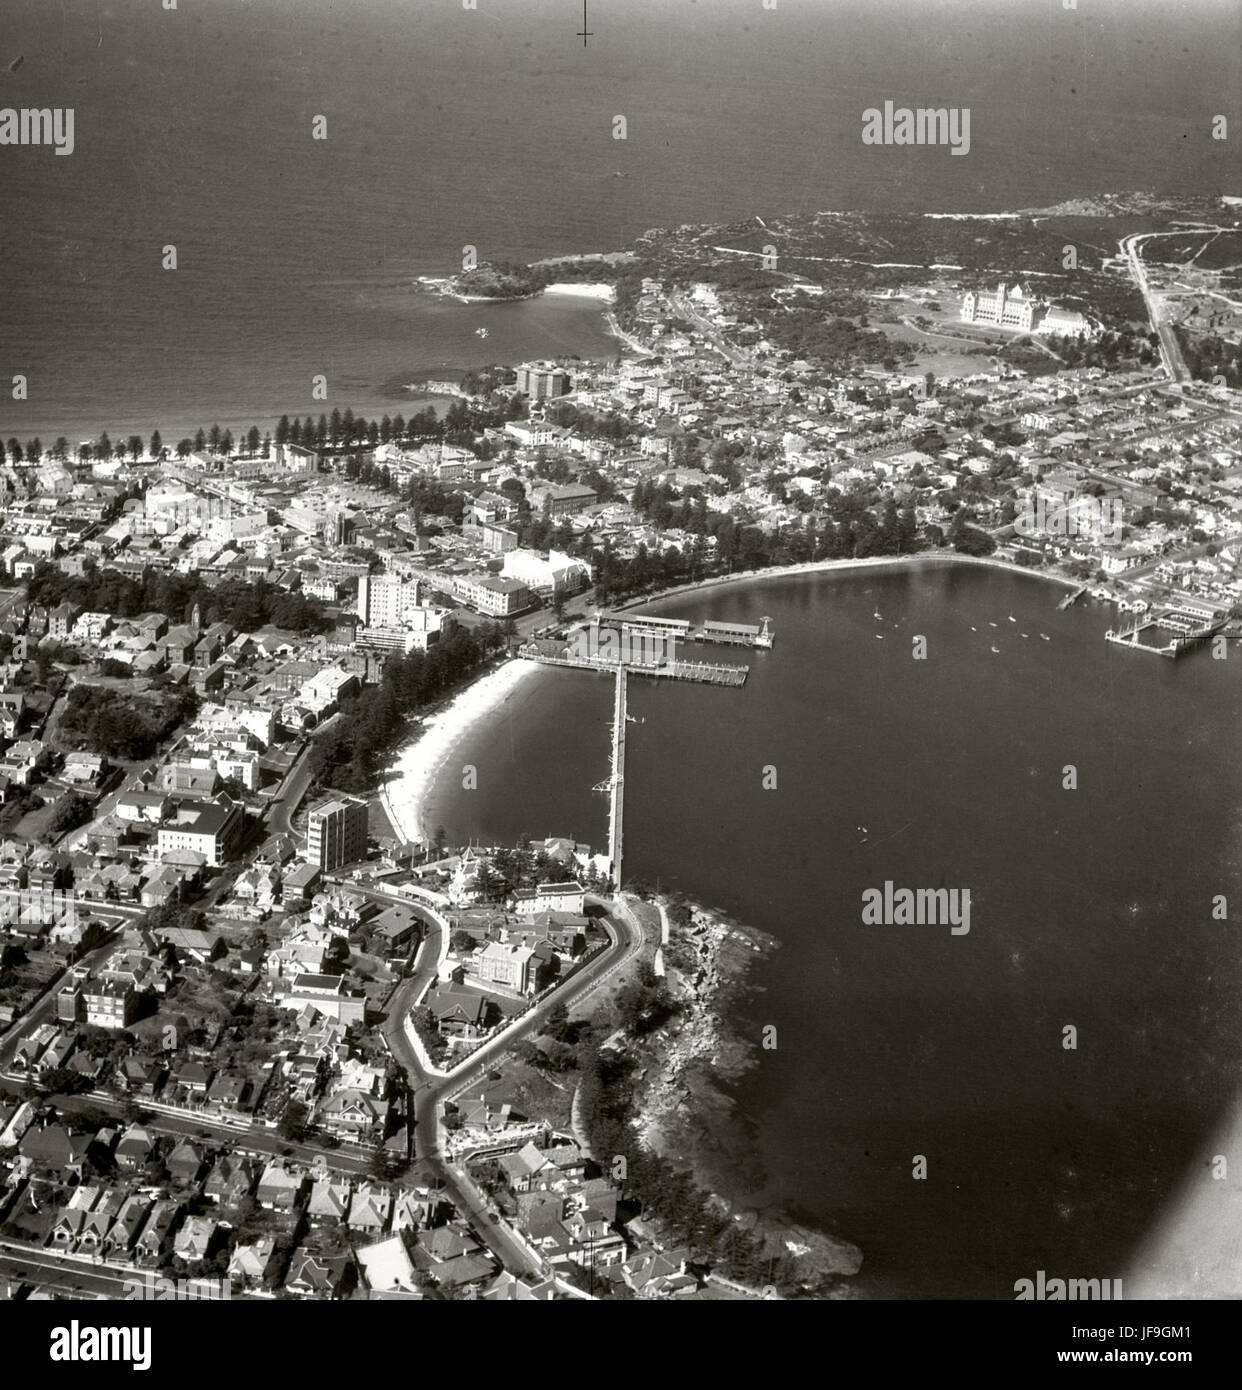 Manly - 19 Sept 1935 29868022050 o - Stock Image